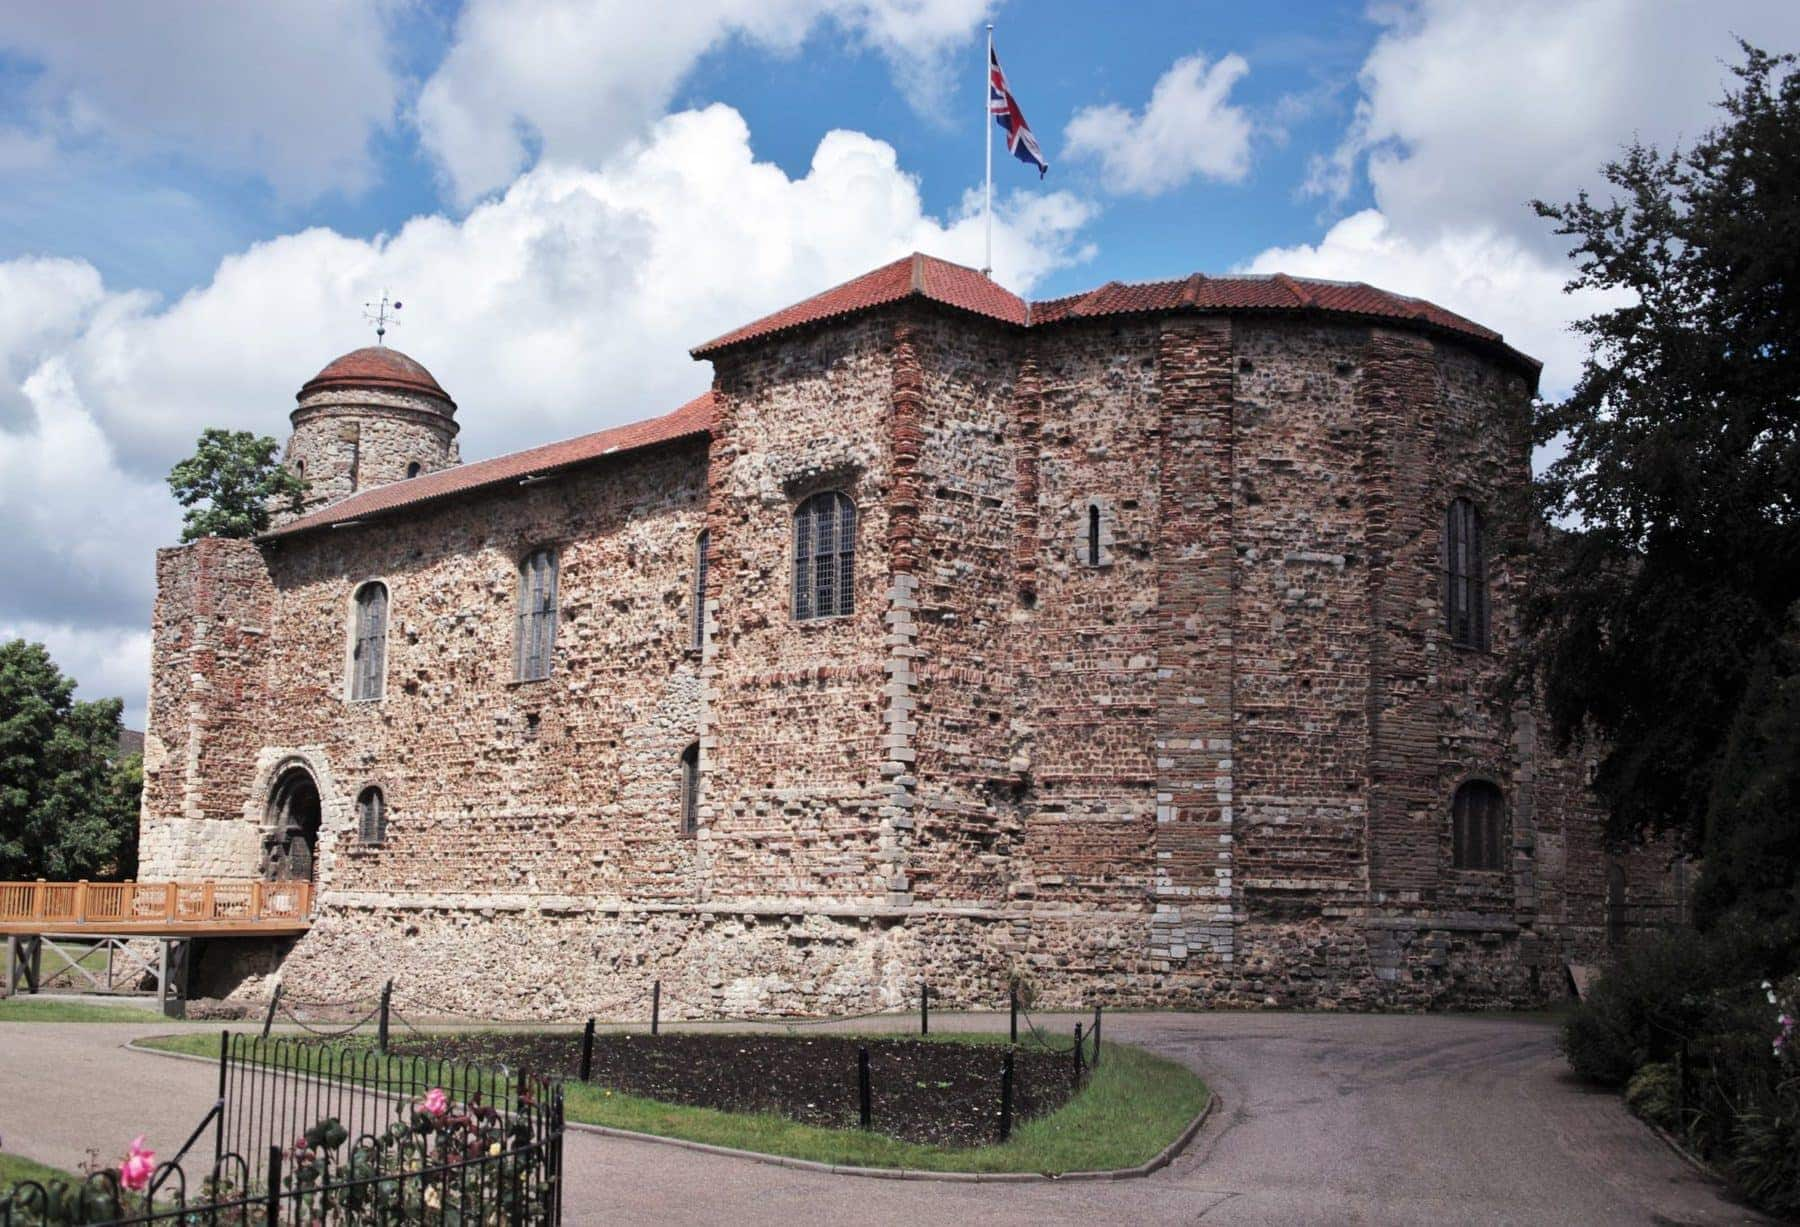 Locksmith services in the historic town of Colchester